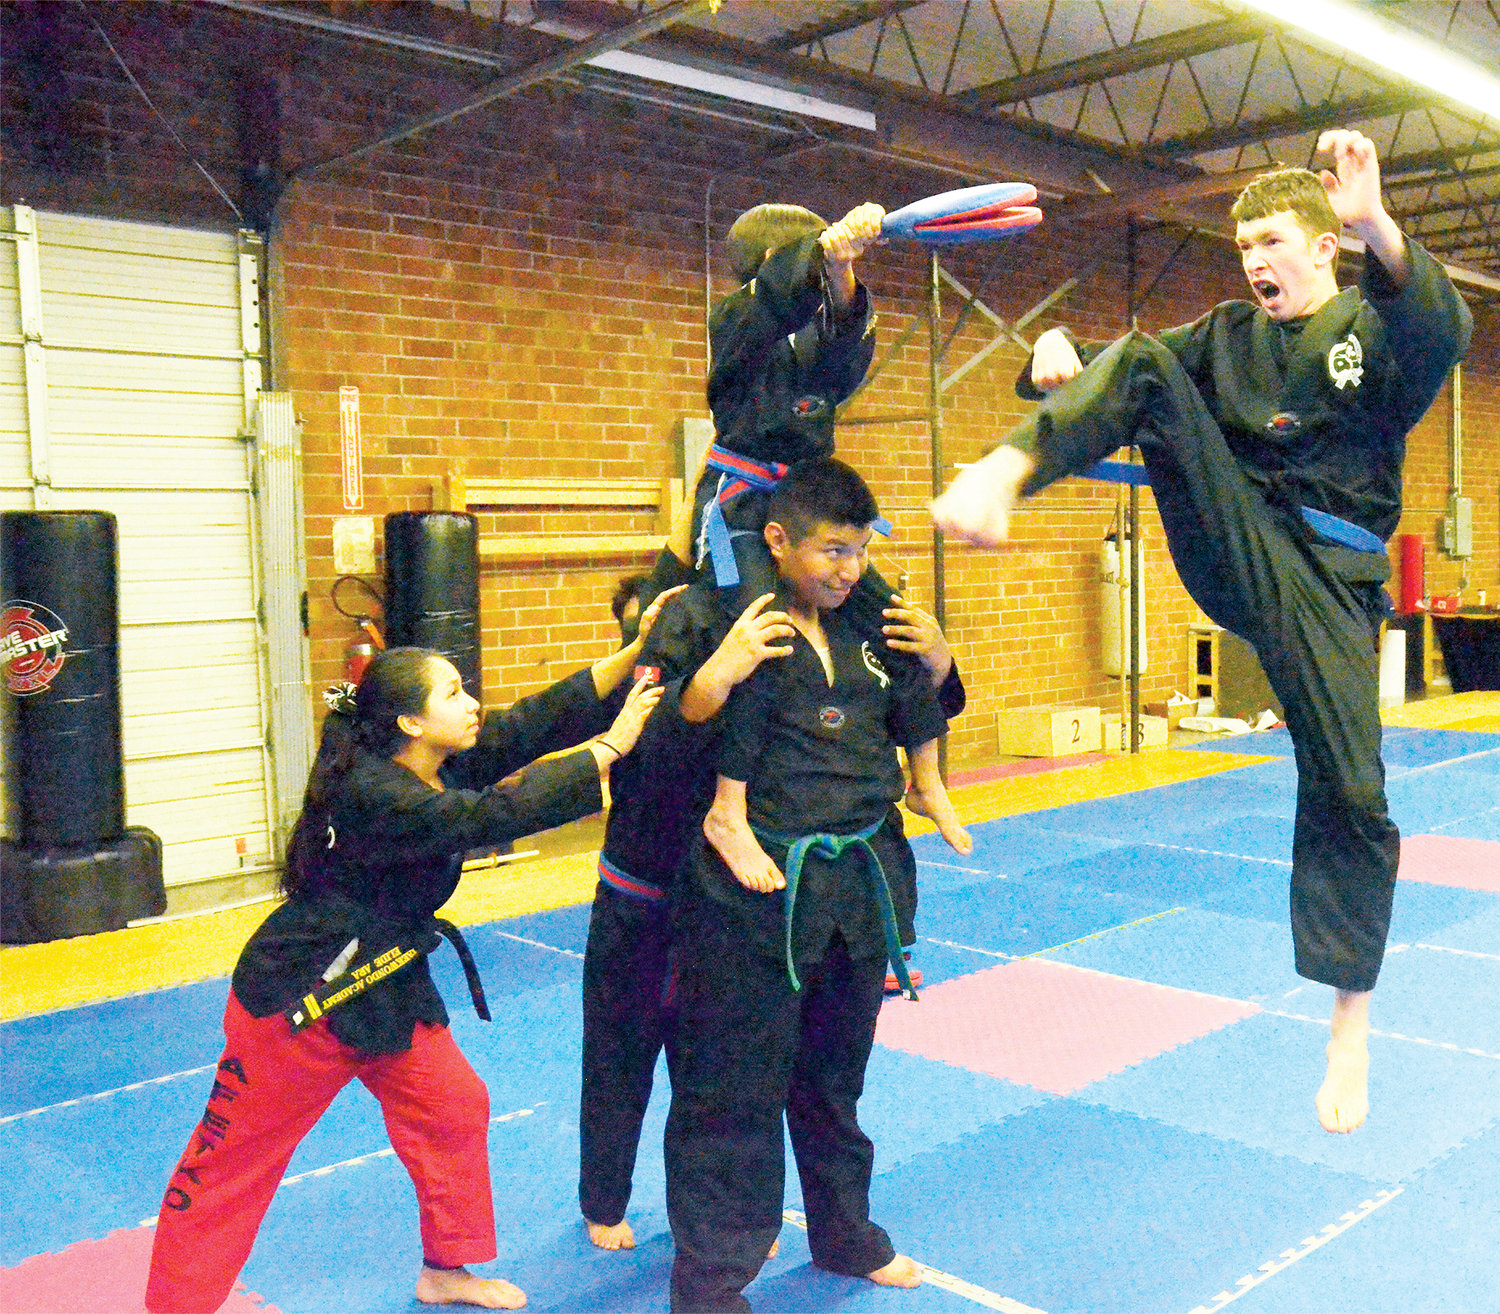 Logan Sammons, 14, delivers a snap kick during practice at the AFE TKD Martial Arts The Best of Siler City Academy.